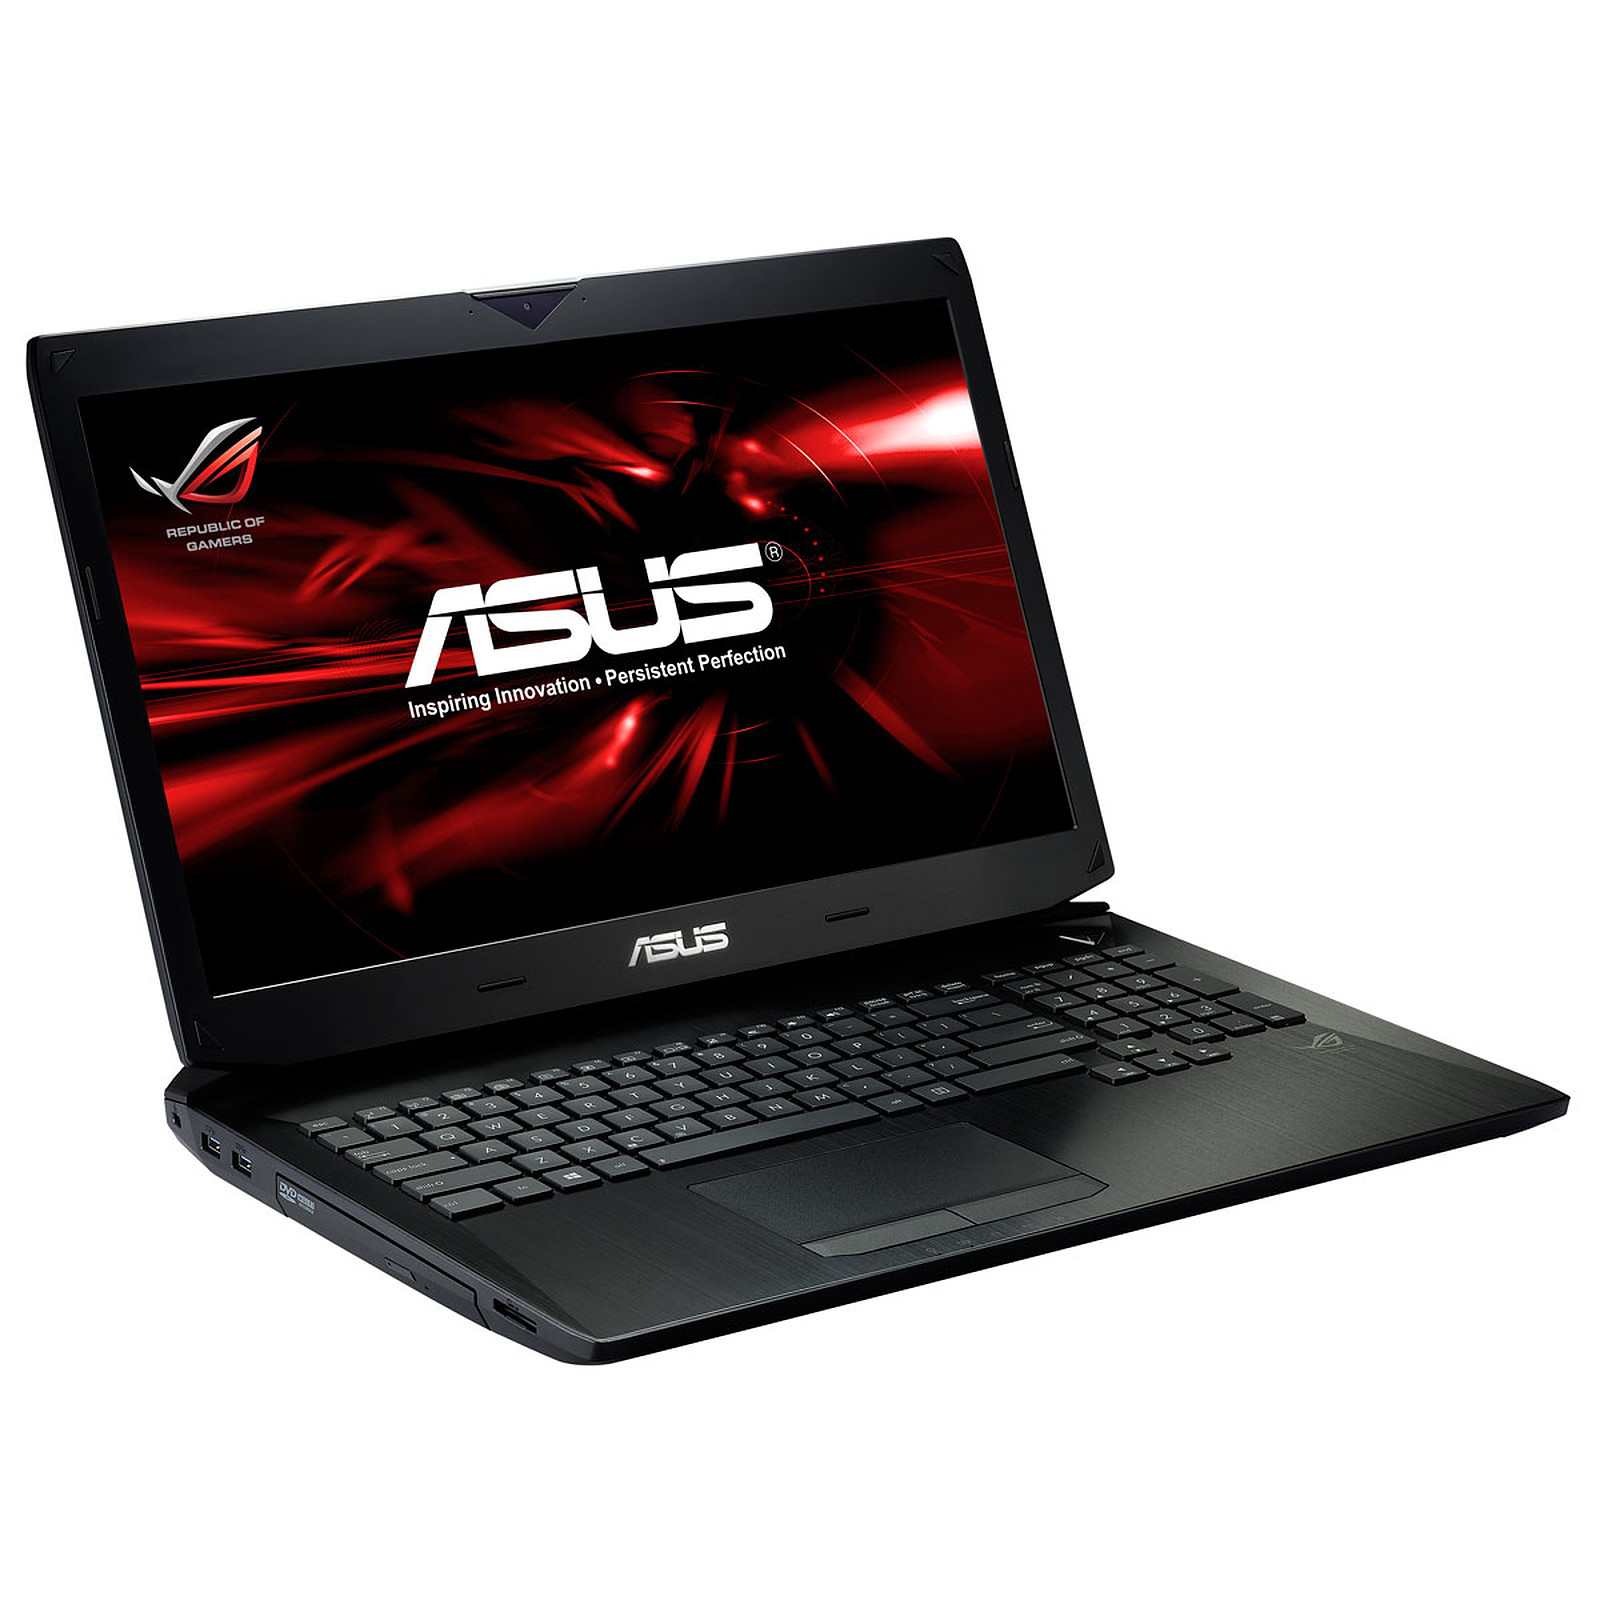 ASUS G750JX-T4279H Edition Assassin's Creed IV